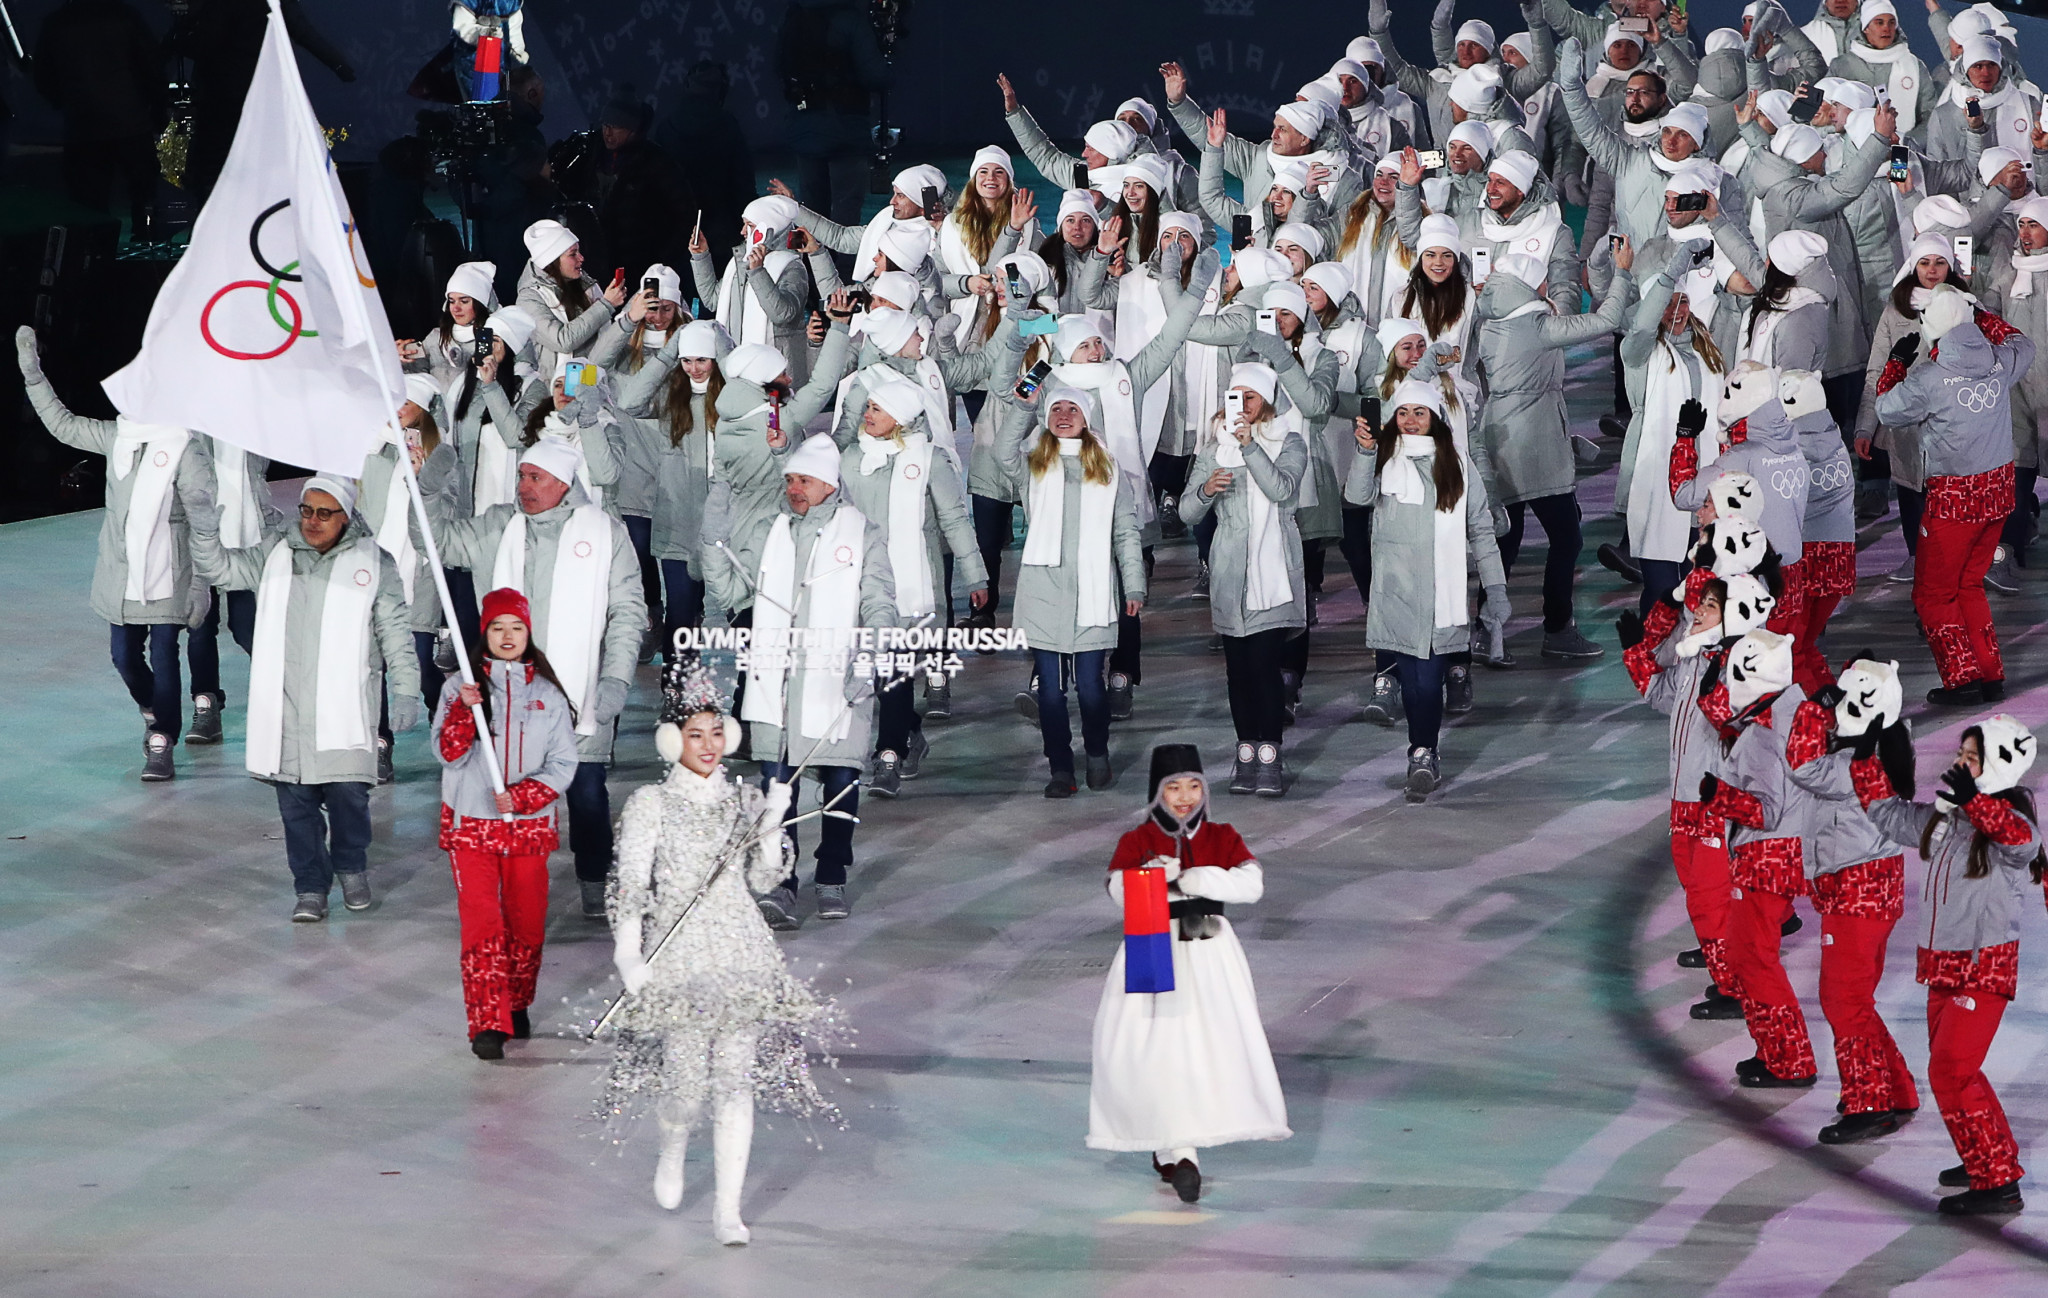 Decision on whether Russia allowed to take part in Pyeongchang 2018 Closing Ceremony postponed